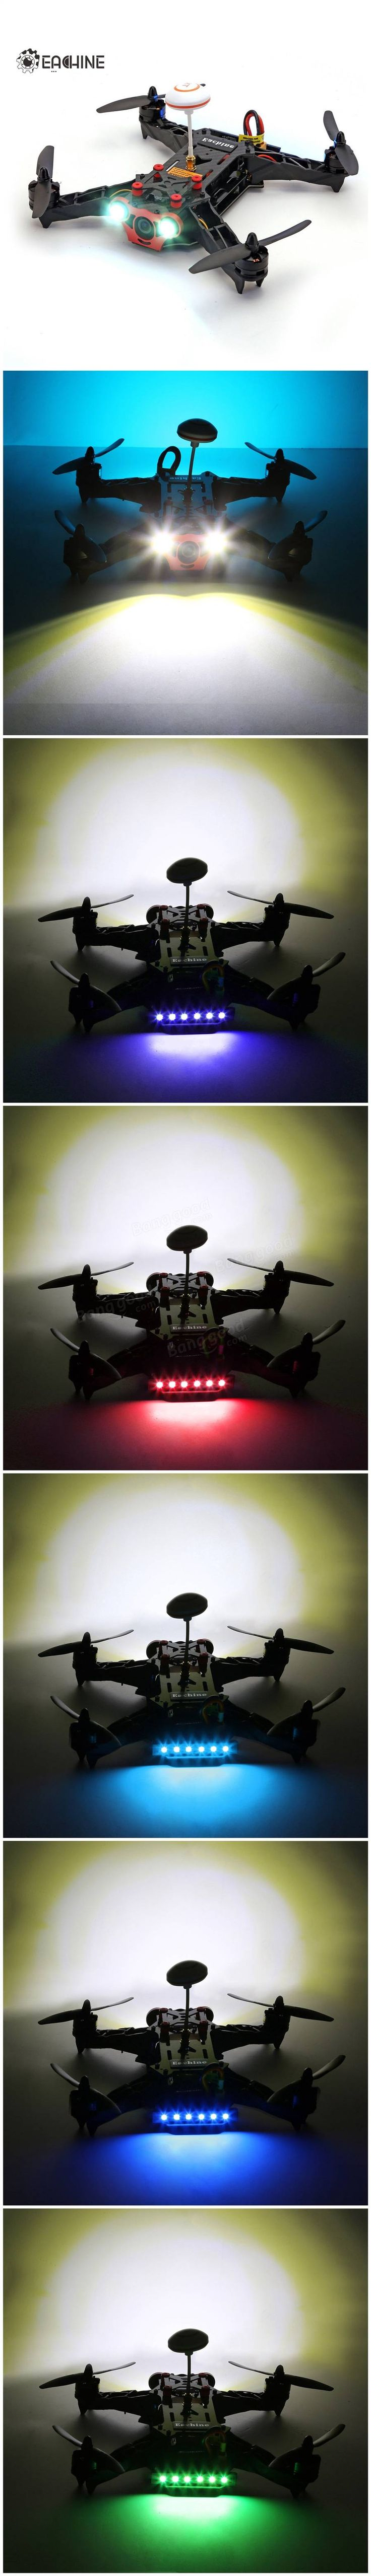 Eachine Racer 250 FPV Drone Built in 5.8G Transmitter OSD With HD Camera ARF Version Sale-Banggood.com